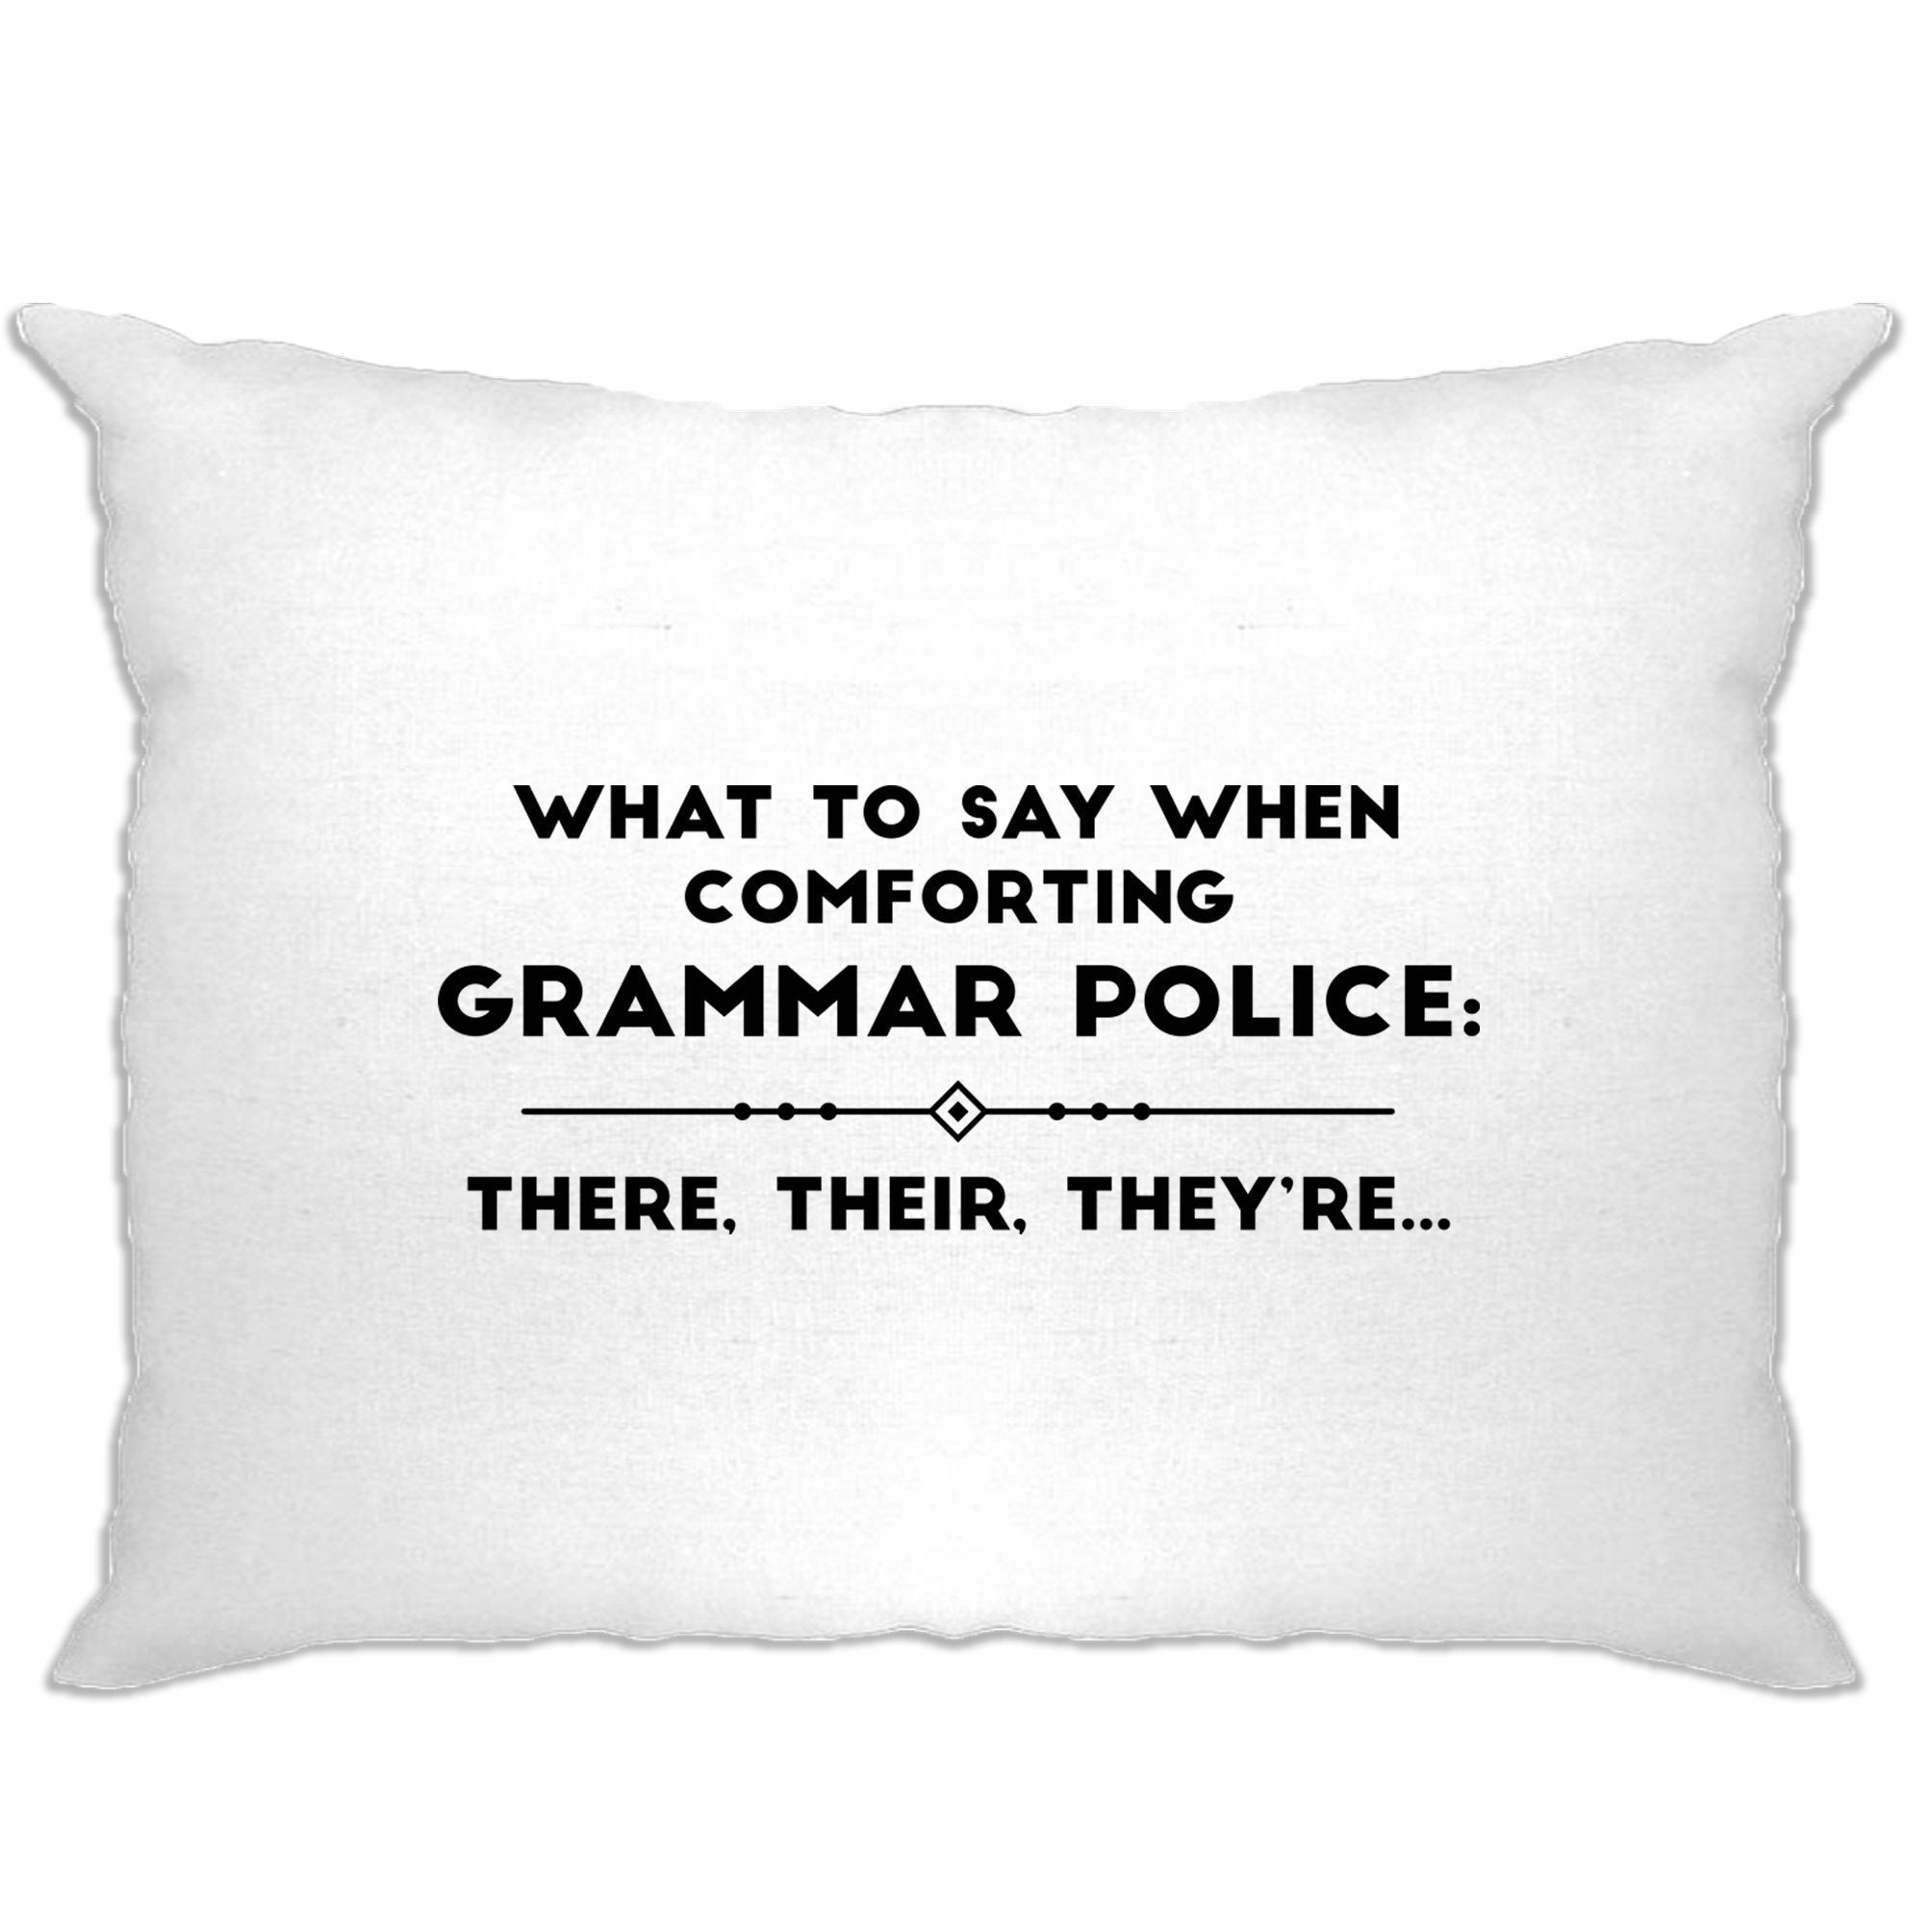 Pun Pillow Case What To Say When Comforting Grammar Police